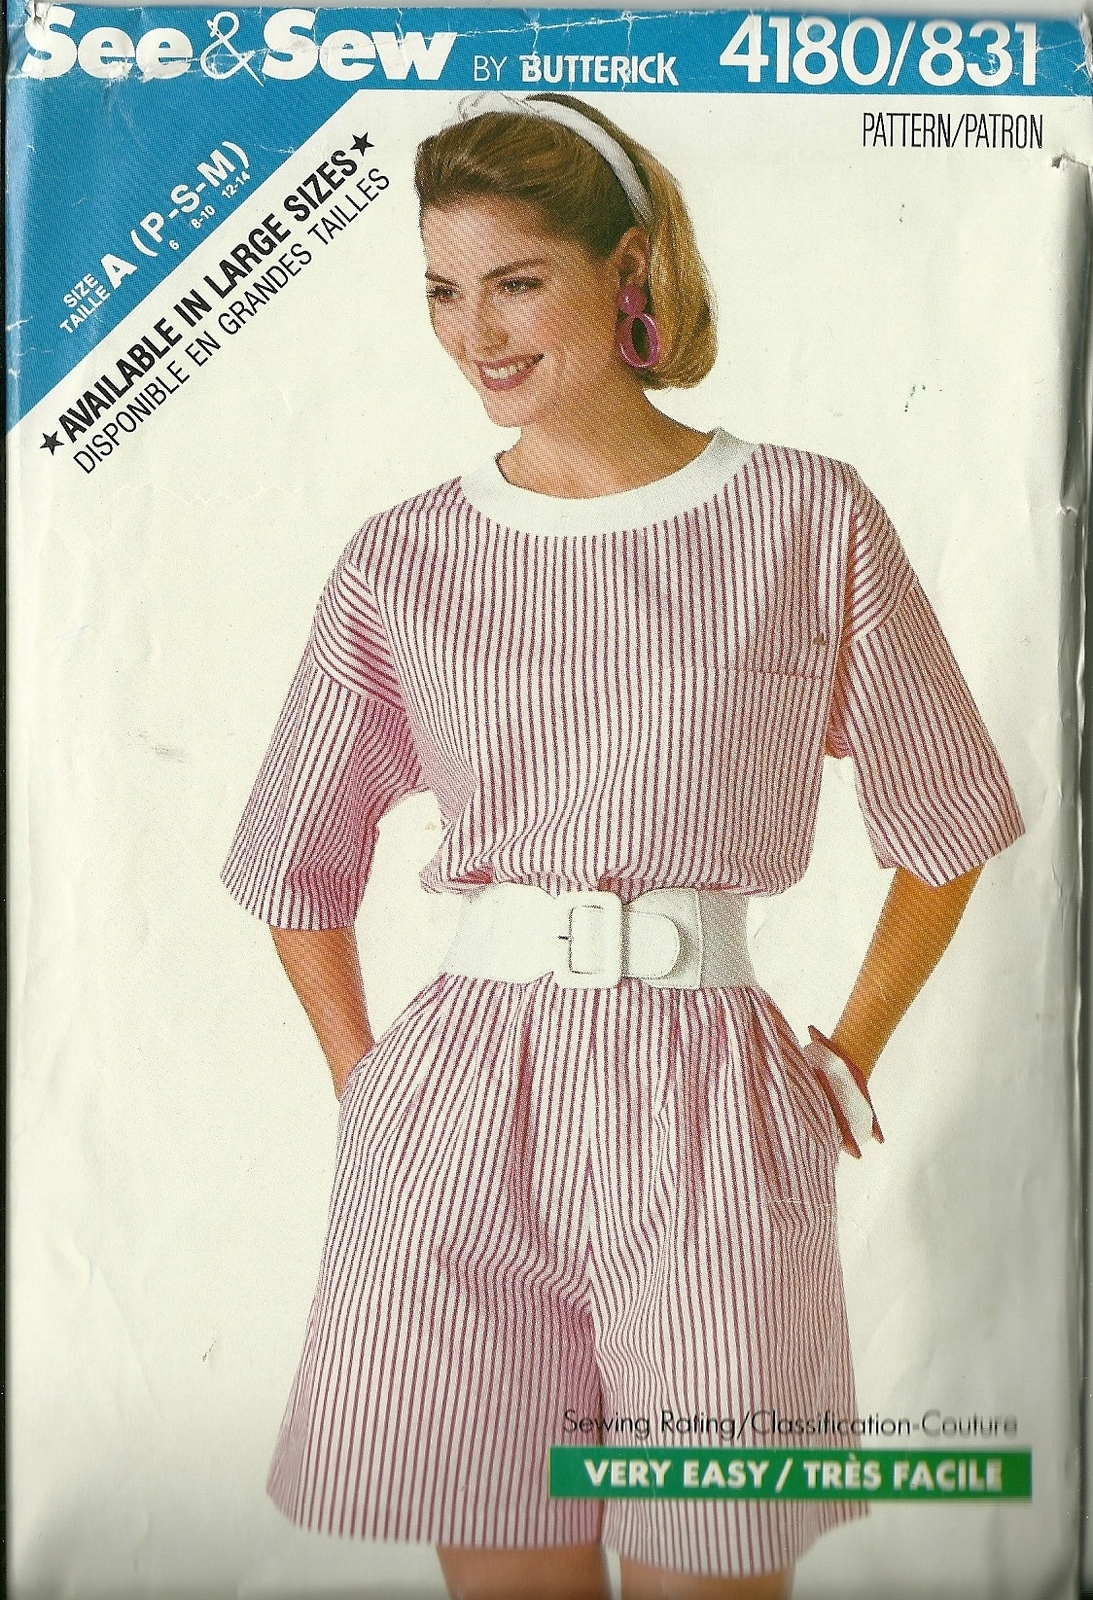 See And Sew Sewing Pattern 4180 831 Misses Womens Top Shorts 6 8 10 12 14 Used - $9.98